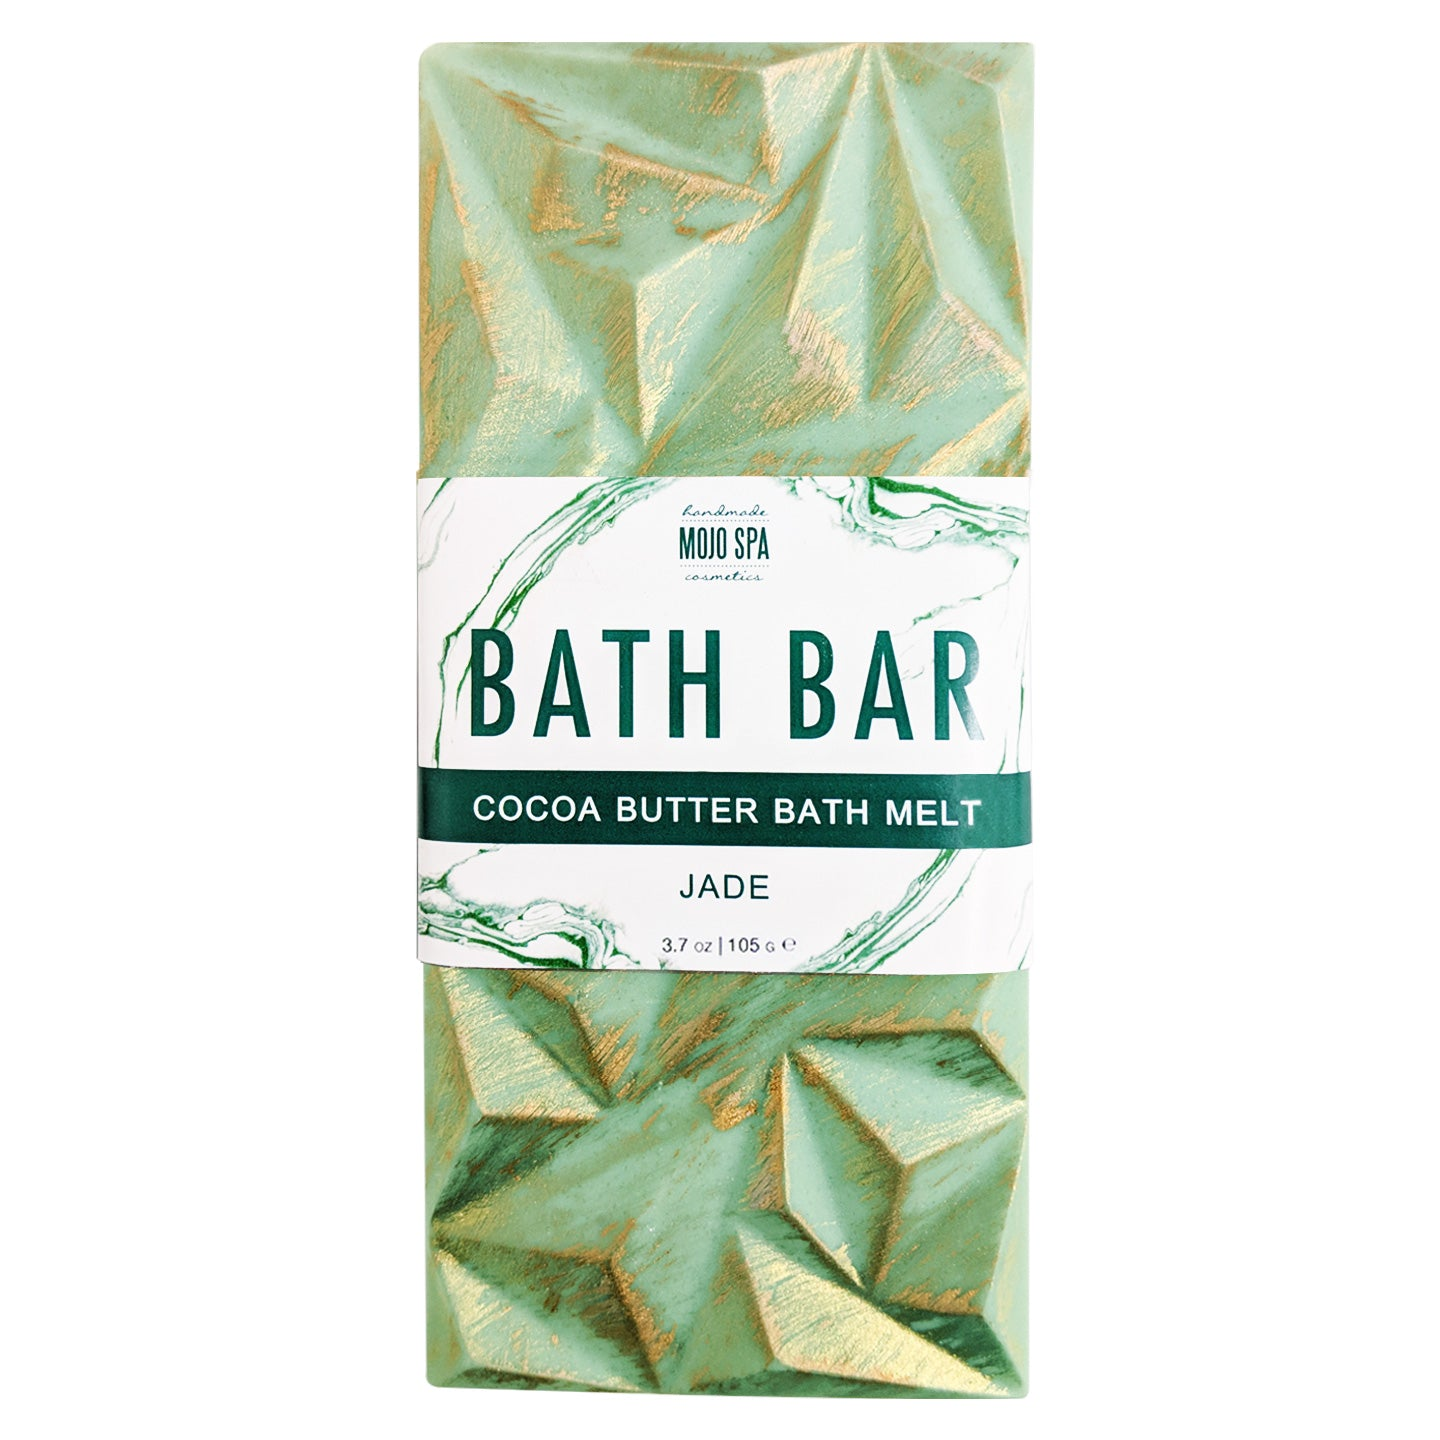 Jade Bath Bar